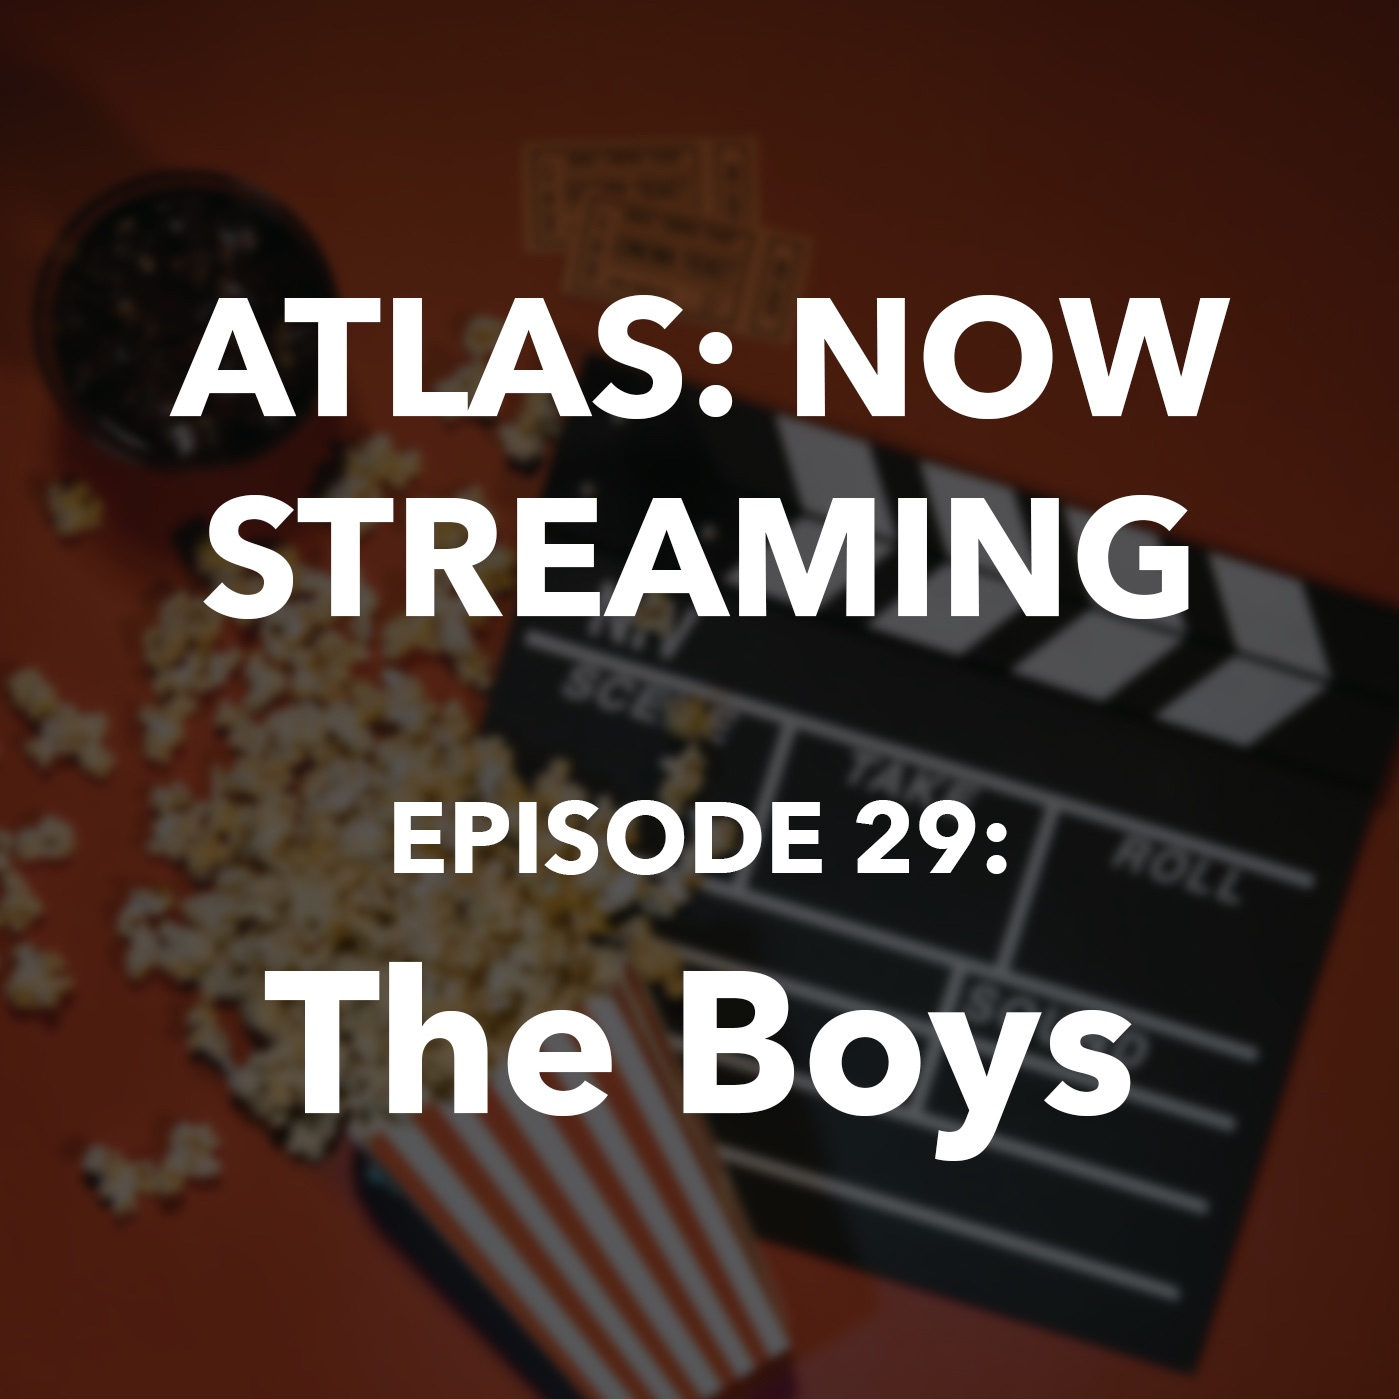 The Boys - Atlas: Now Streaming Episode 29